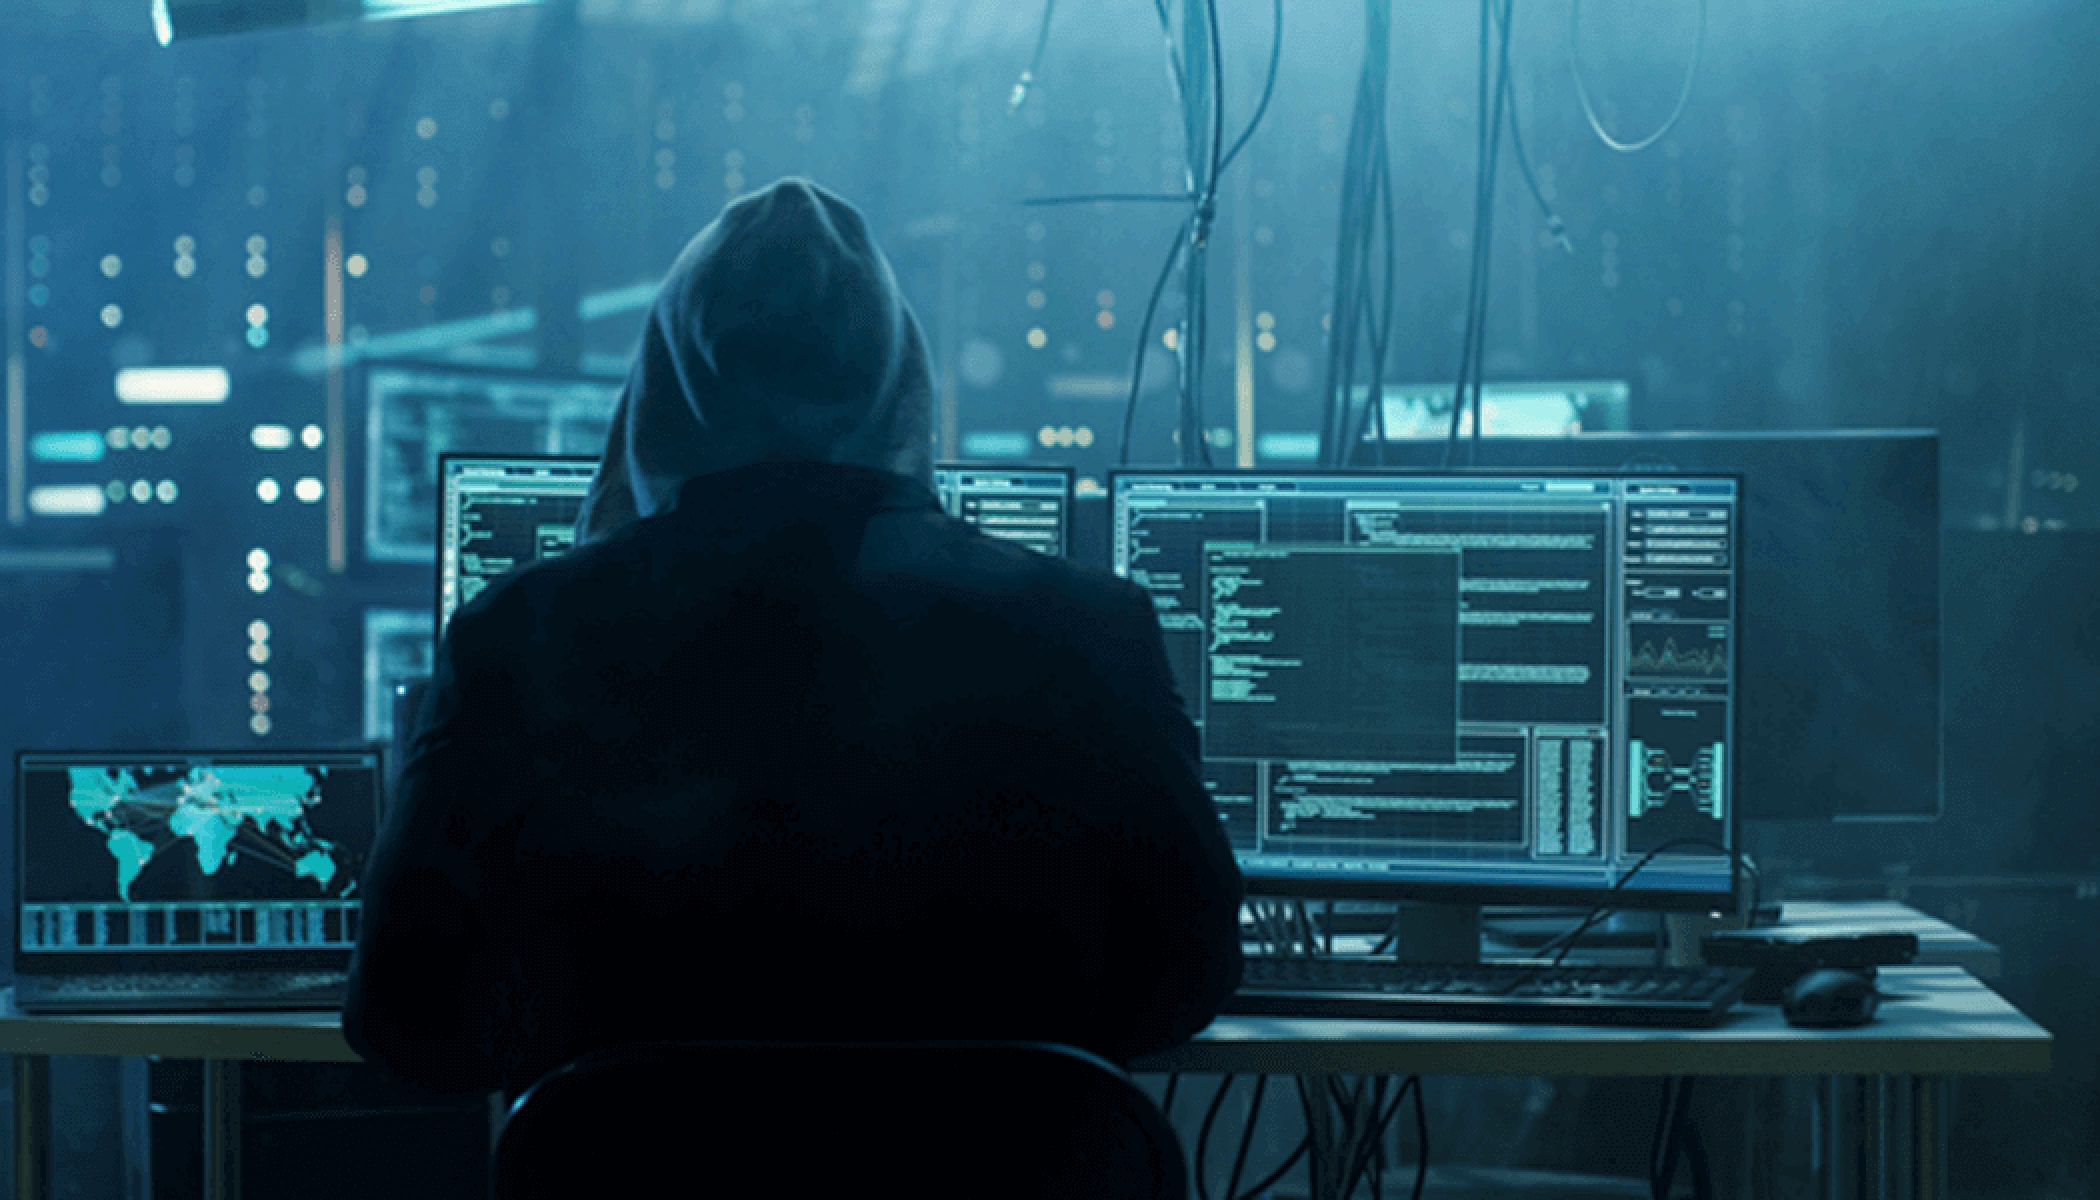 Four Types Cyber Attackers Header Image